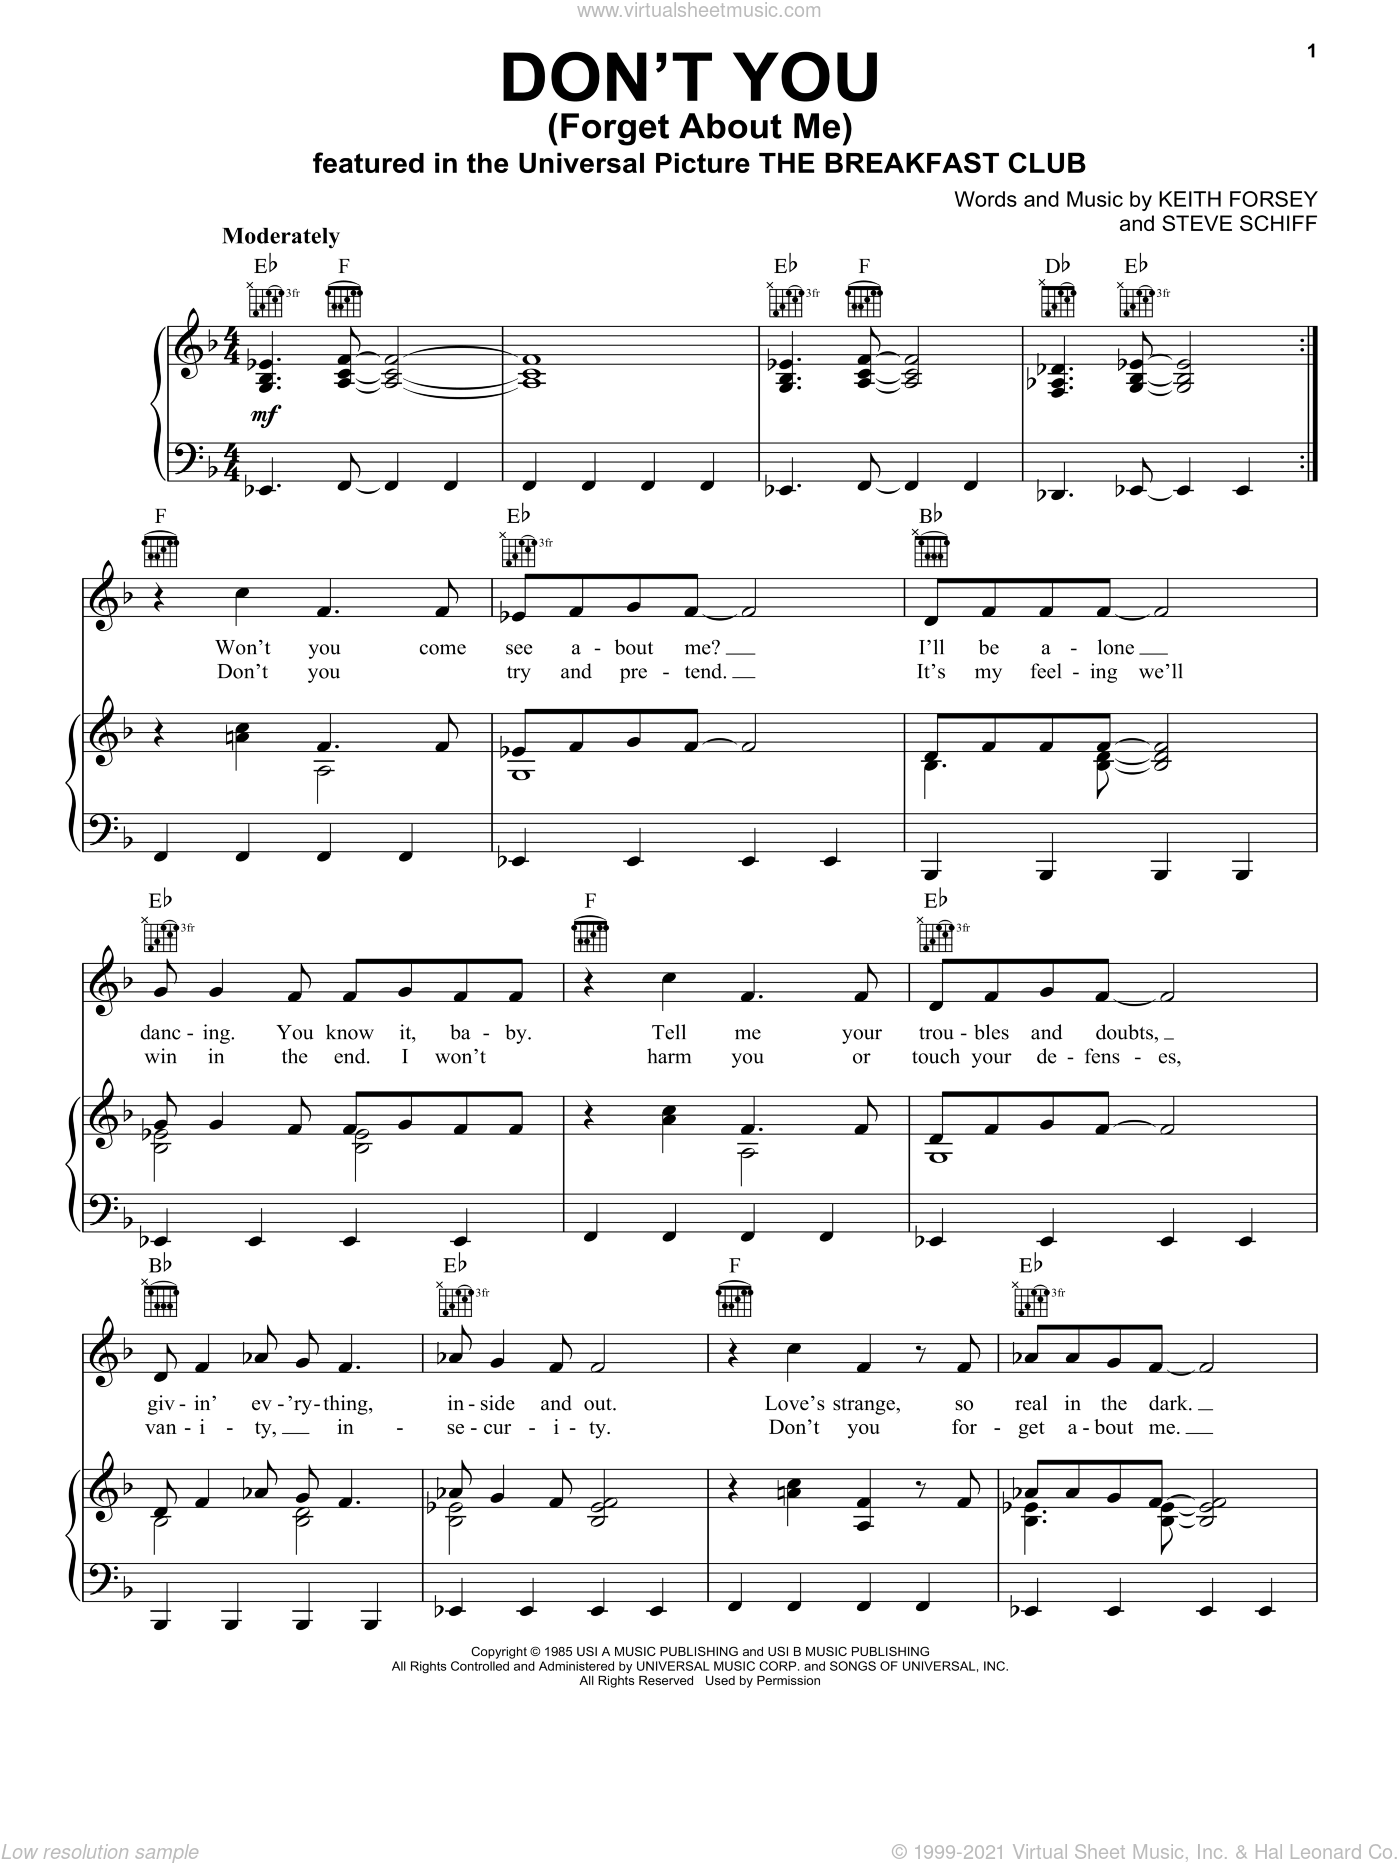 Don't You (Forget About Me) sheet music for voice, piano or guitar by Simple Minds, Keith Forsey and Steve Schiff, intermediate